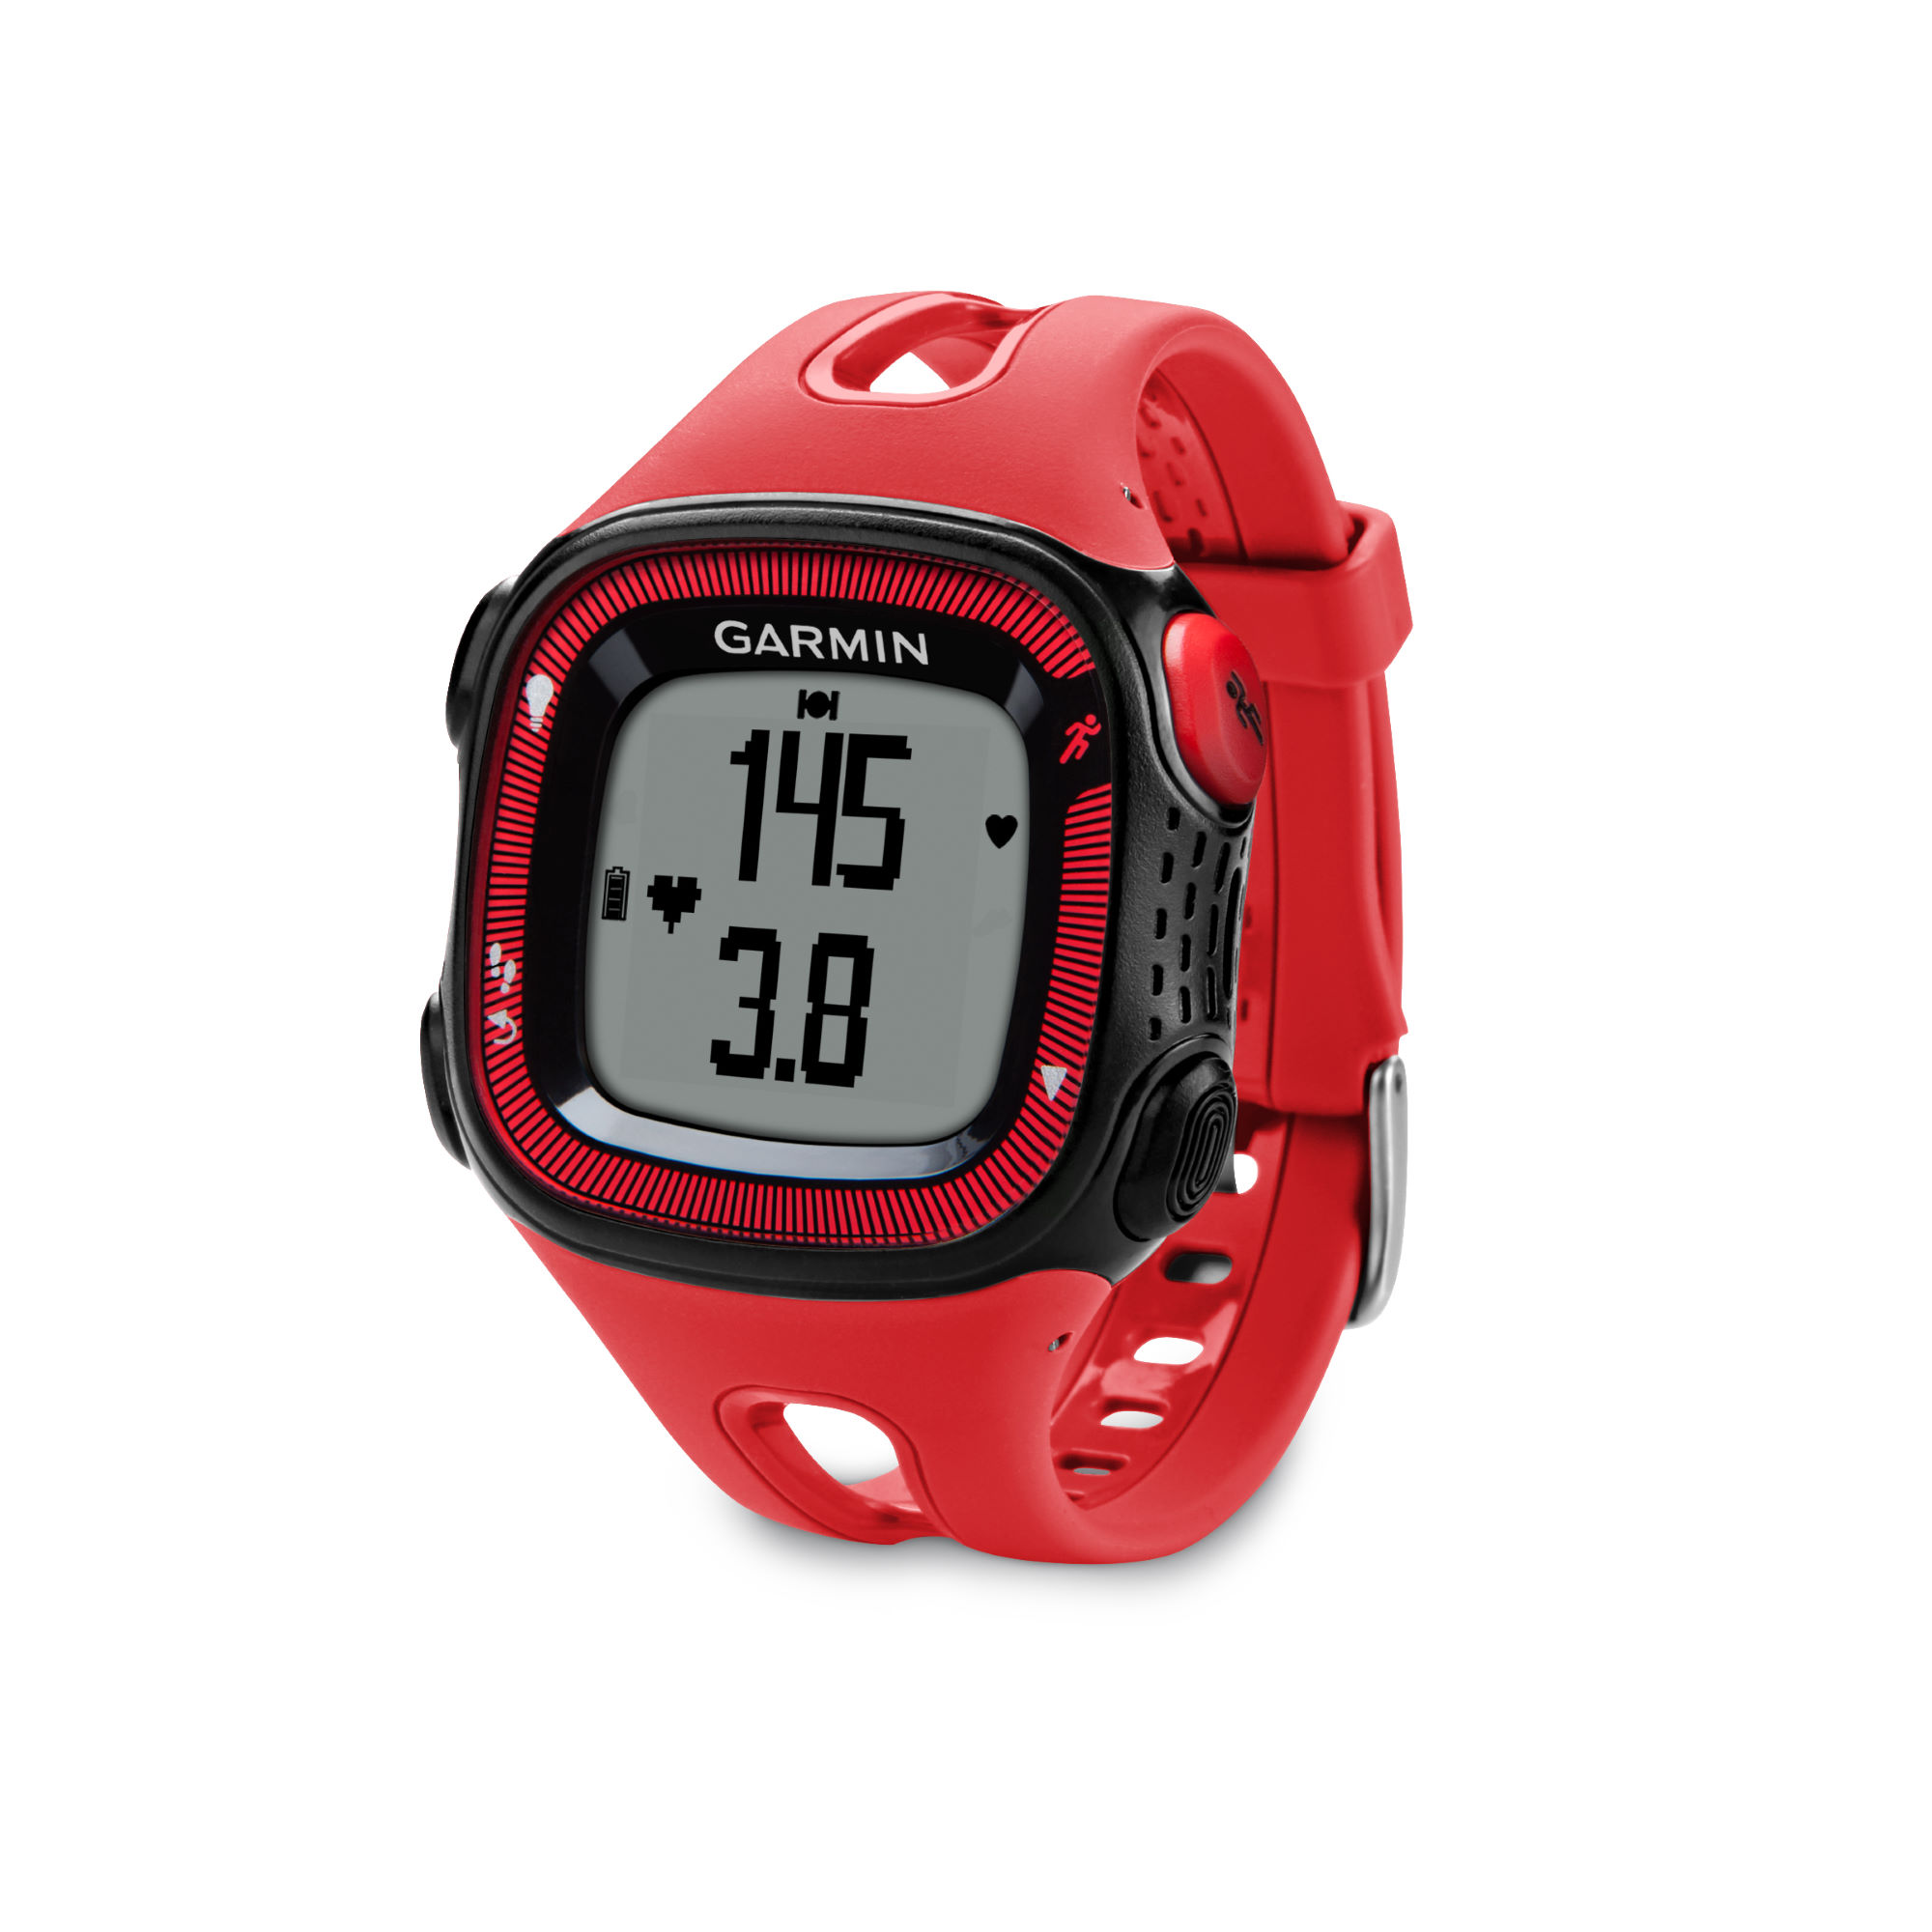 compteurs gps de running garmin forerunner 15 gps. Black Bedroom Furniture Sets. Home Design Ideas